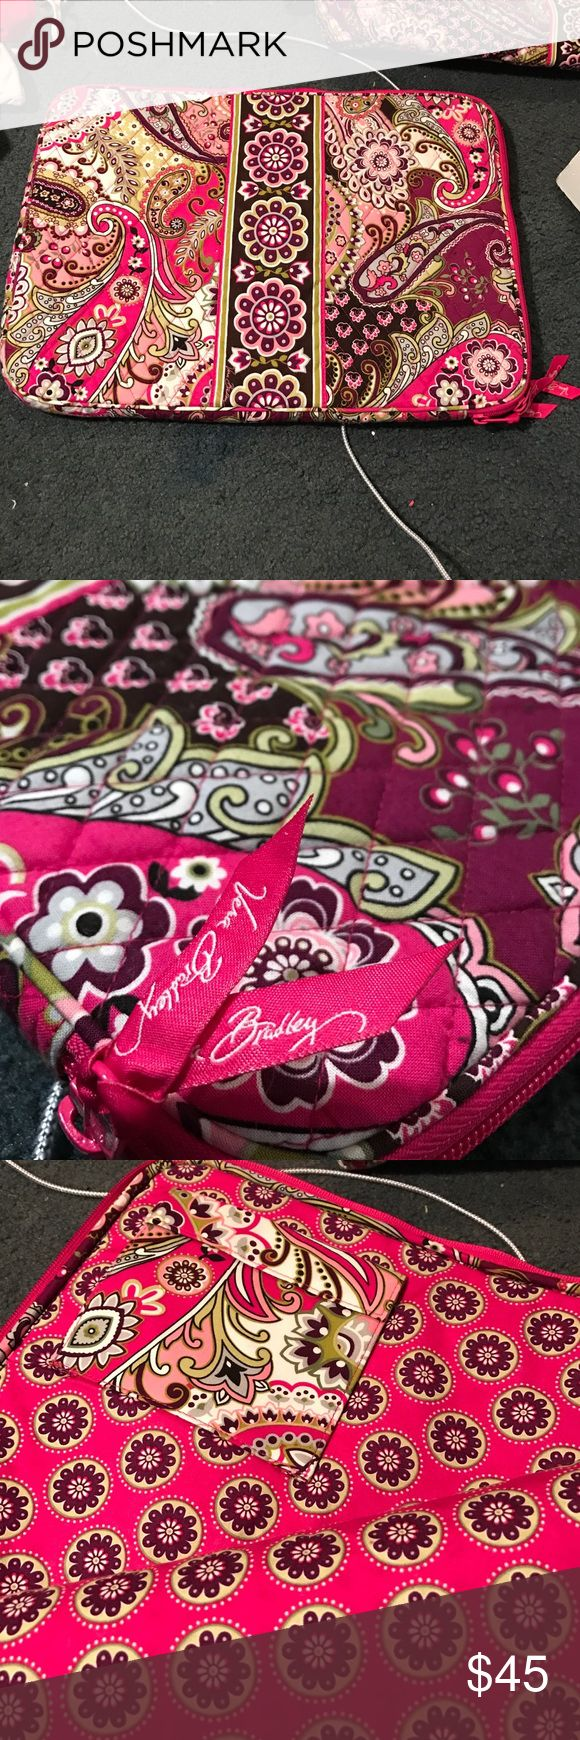 """Vera Bradley quilted laptop bag - very berry This quilted Vera Bradley laptop case fits a 15"""" laptop and includes an inner pocket that can fit a flash drive, external hard drive, or a laptop charger! This is in the Very Berry pattern and pairs with the tote bag that i also have listed! Never used! Vera Bradley Bags Laptop Bags"""